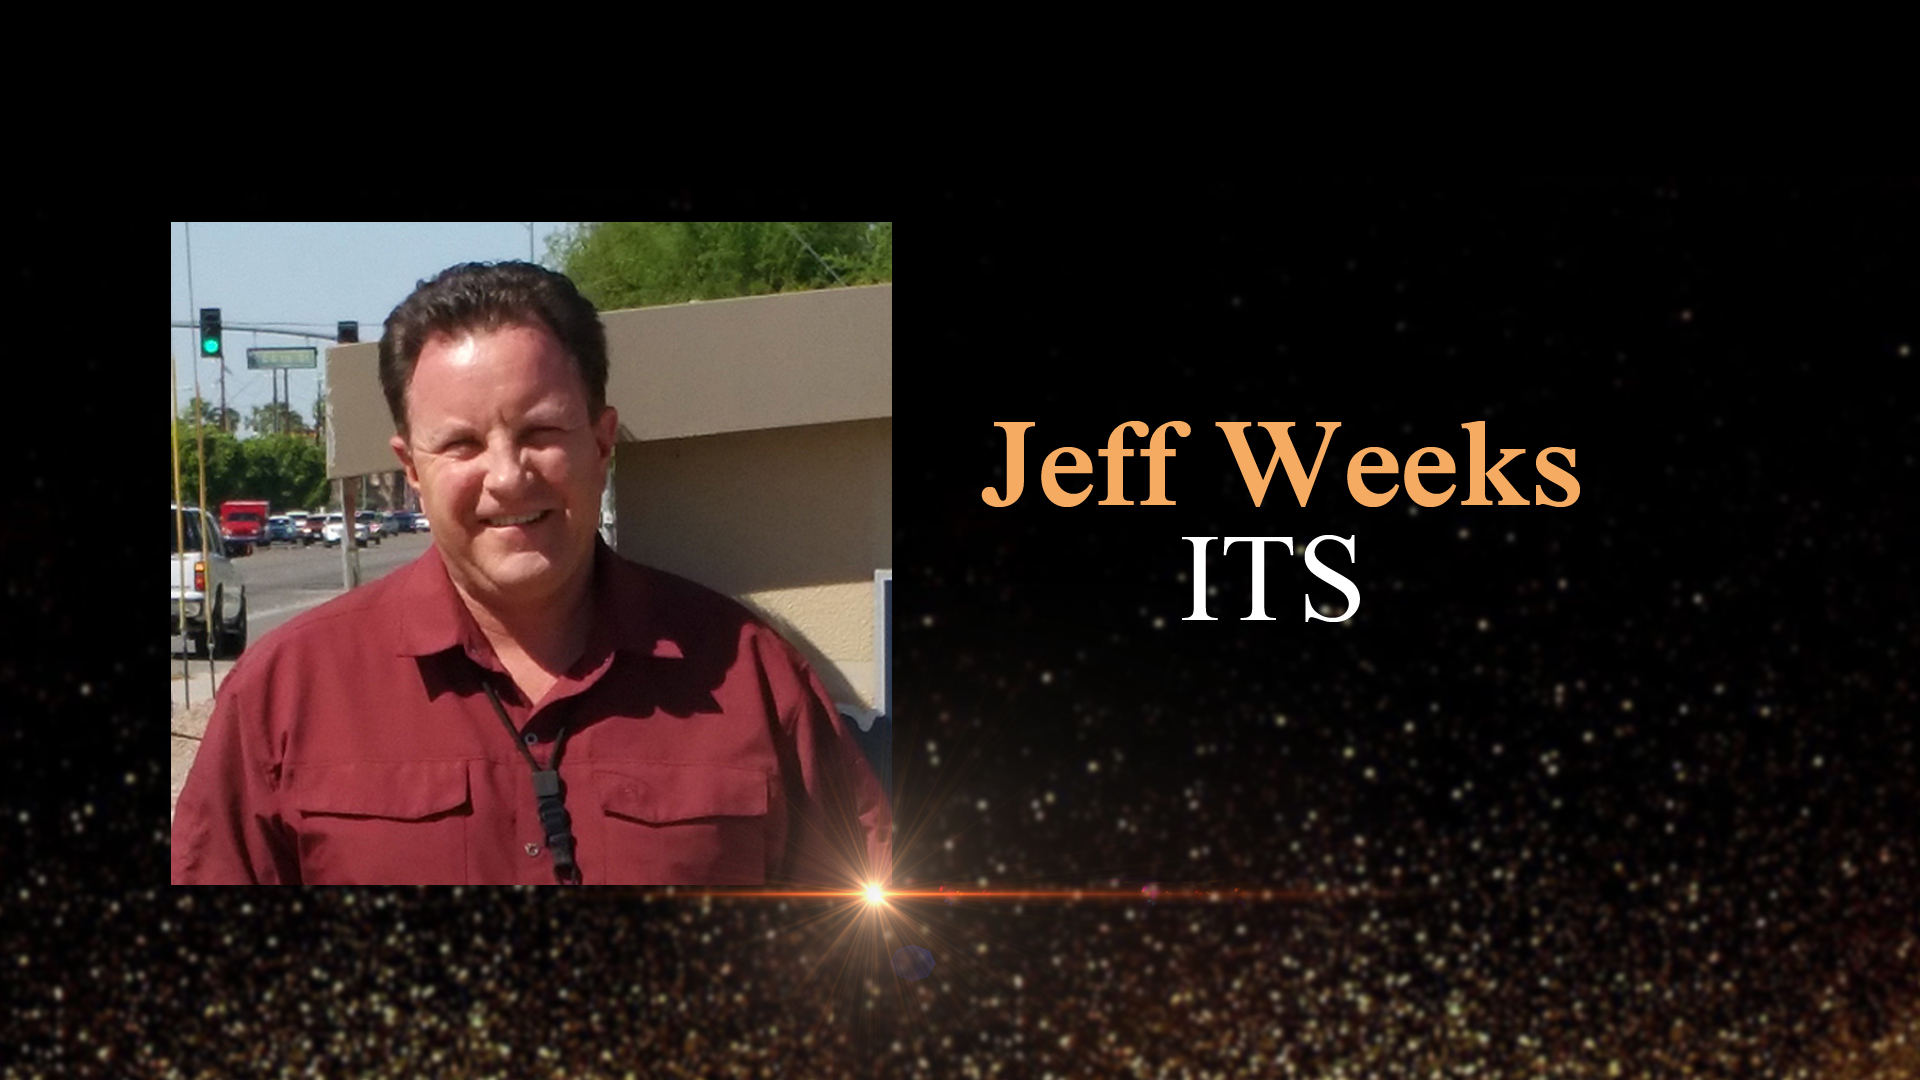 Jeff Weeks